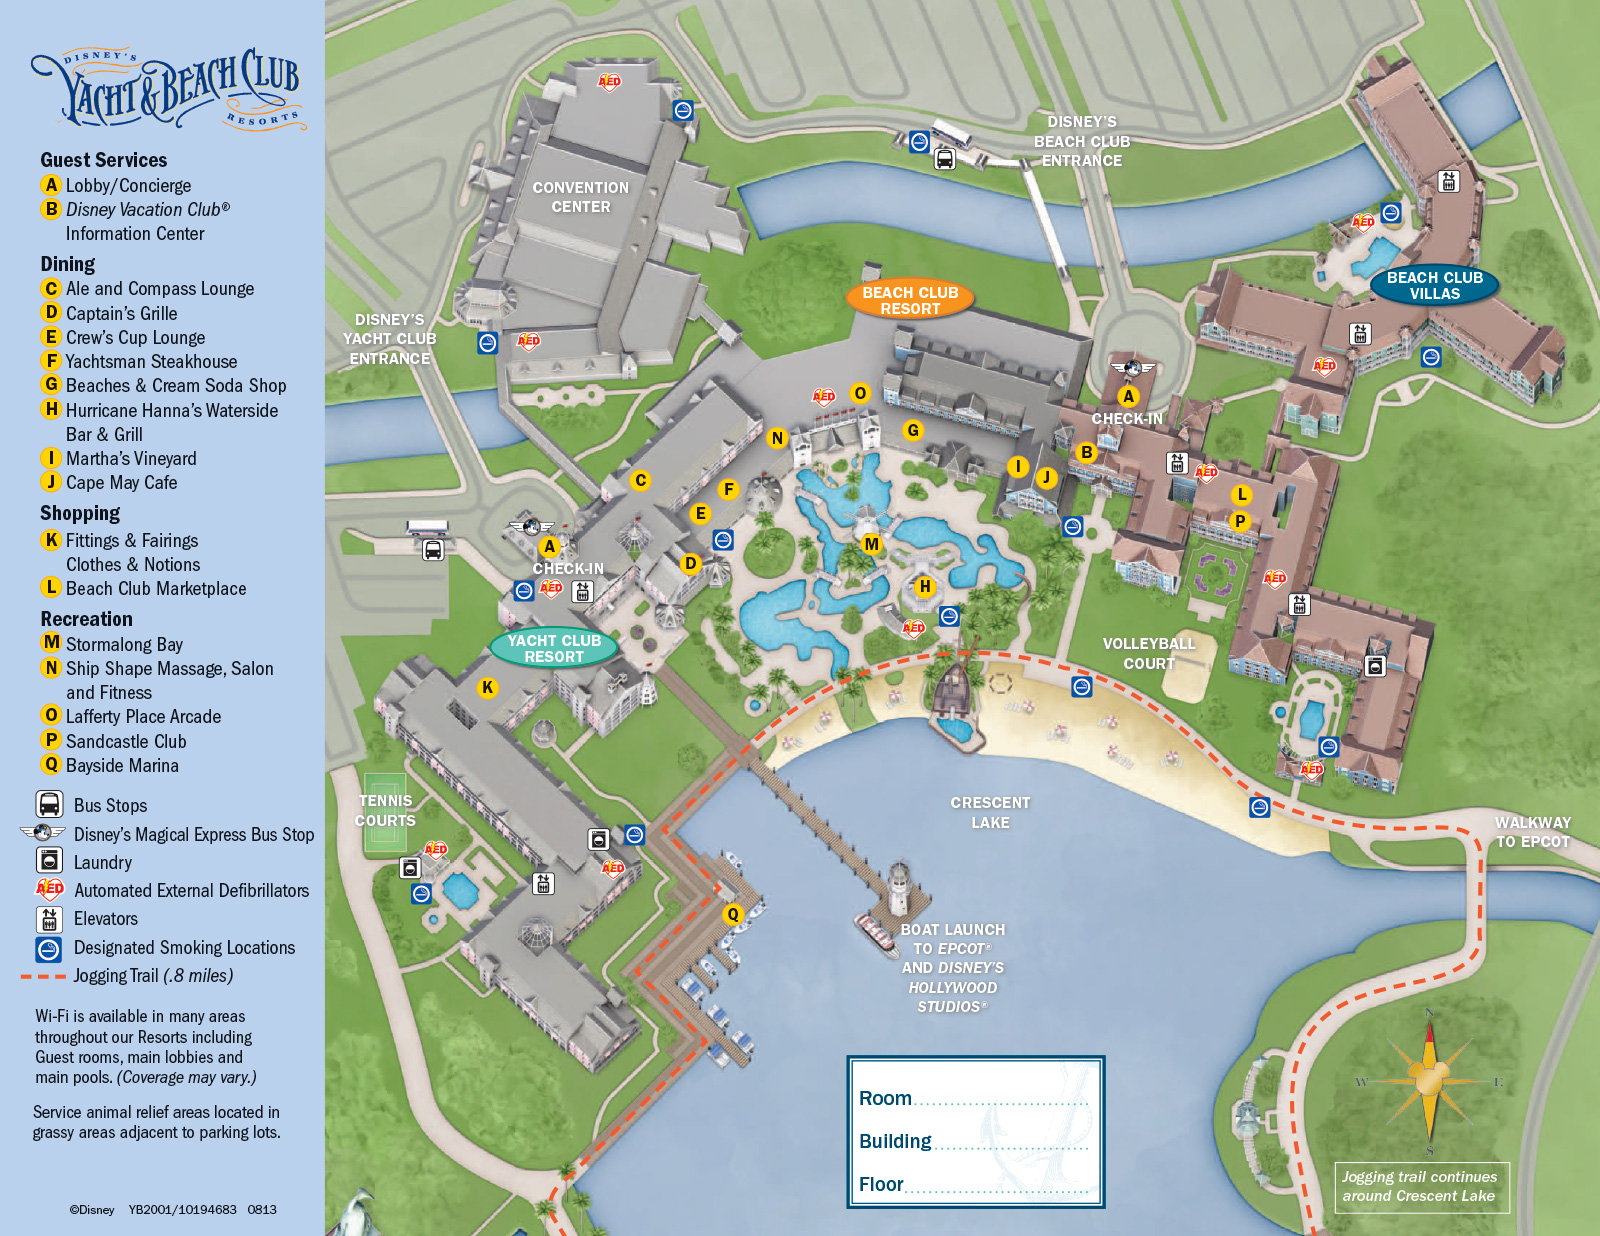 disney 2013 beach club resort guide map 2013